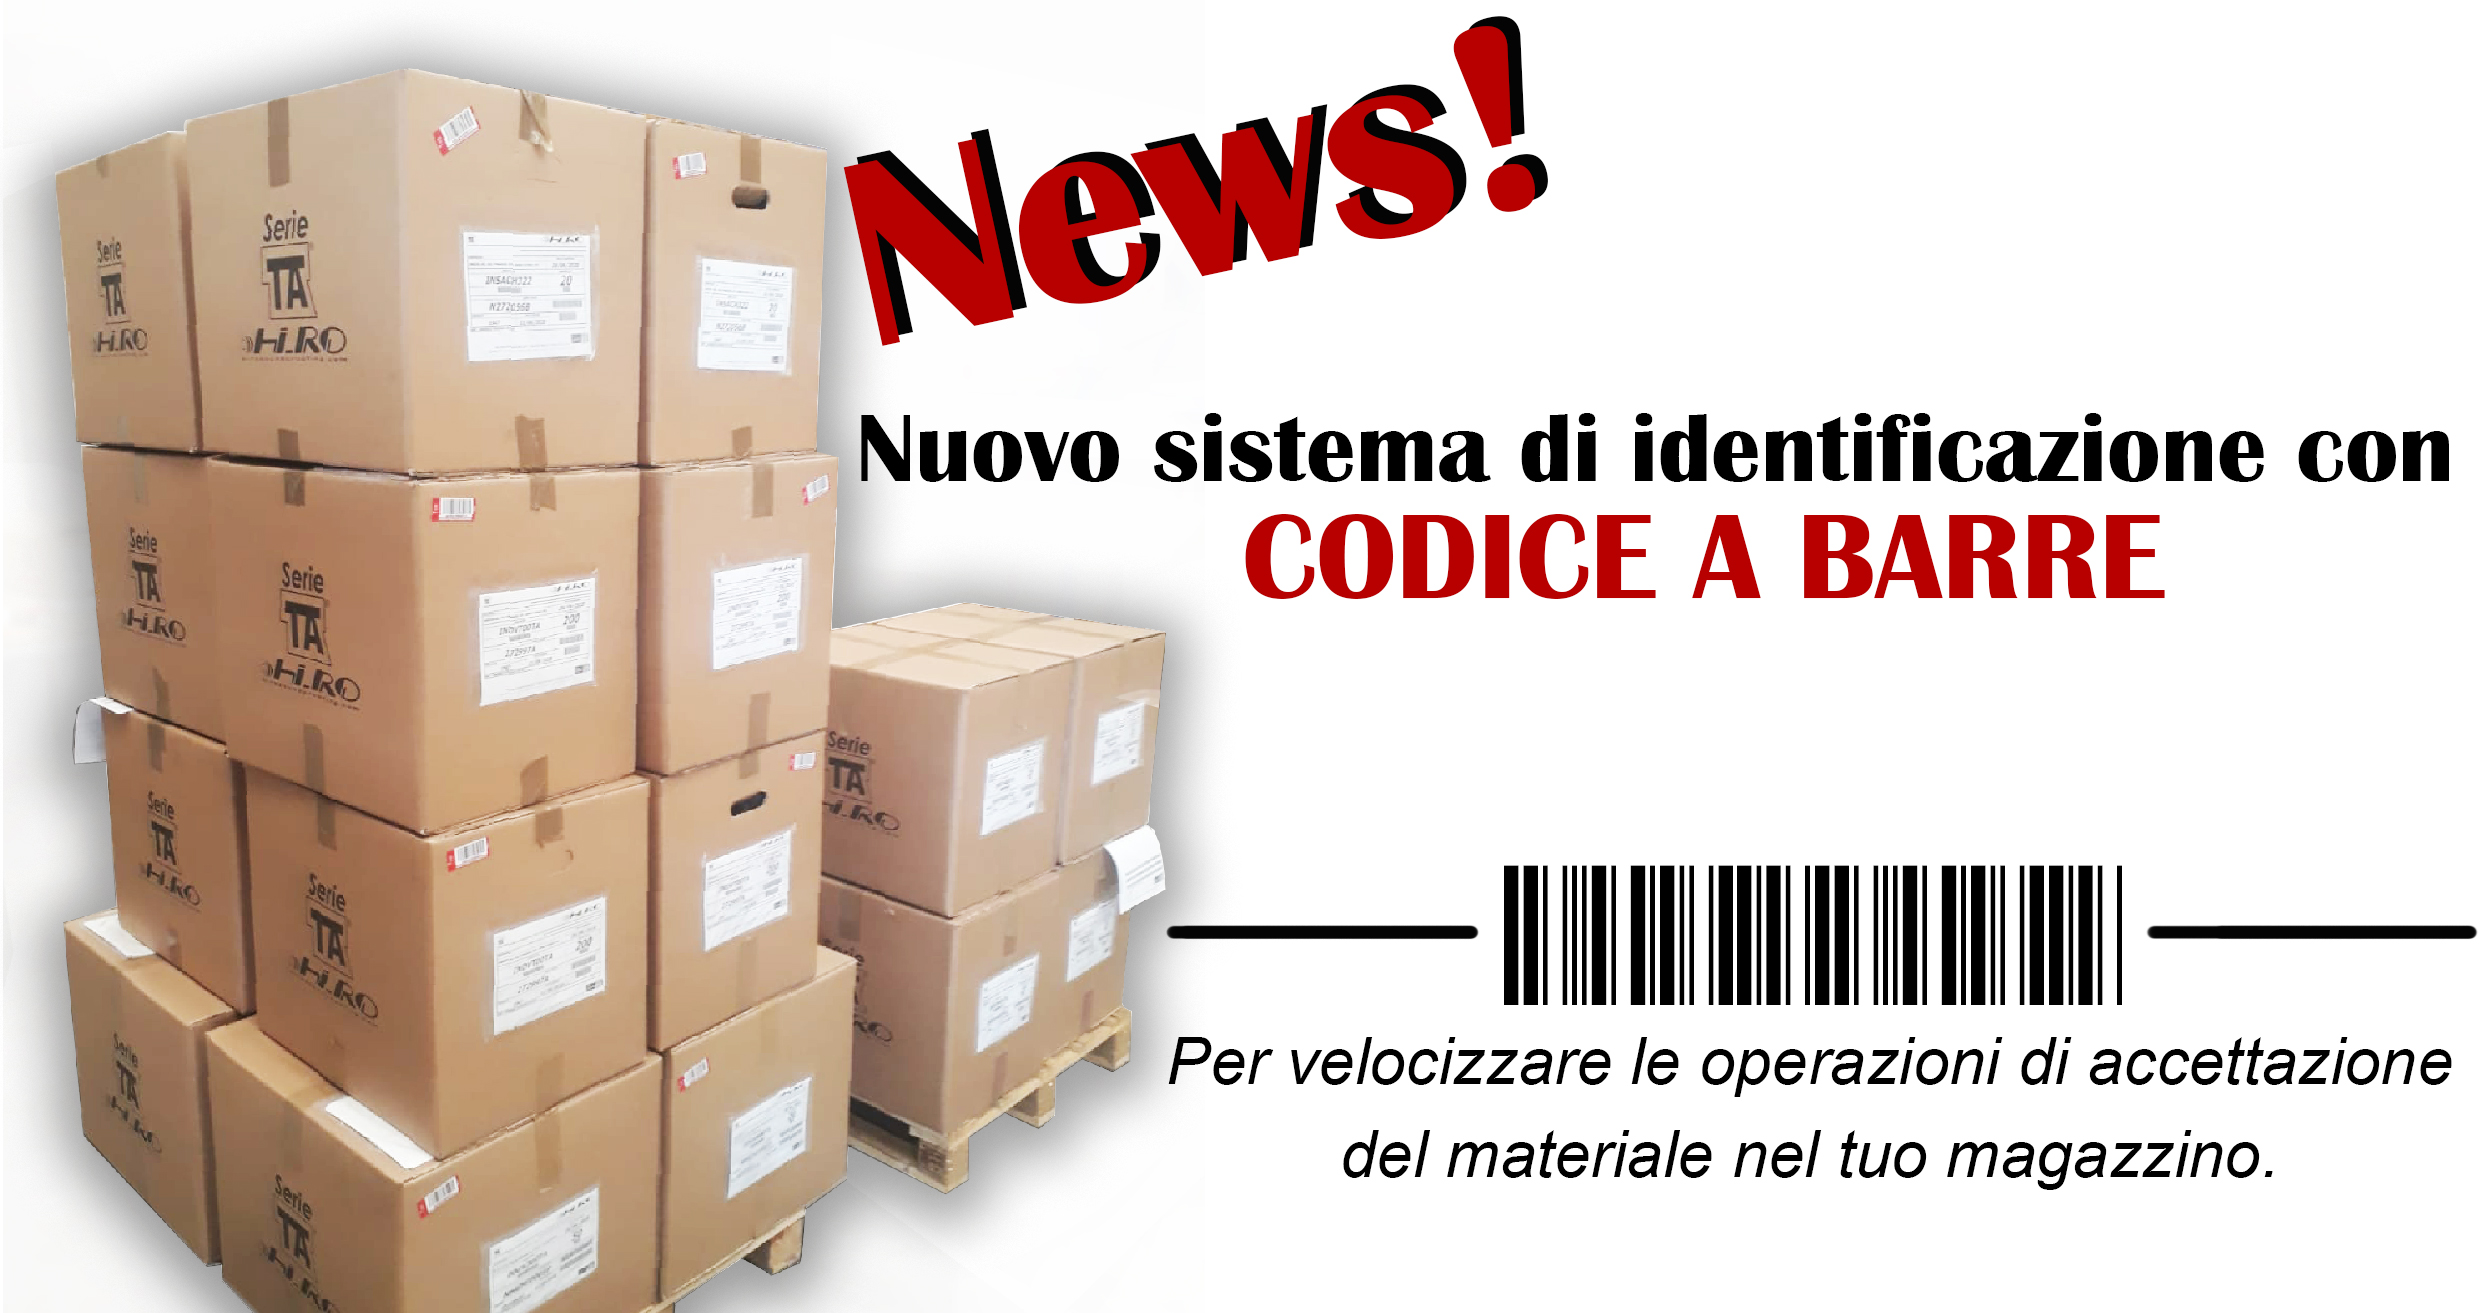 FAST DELIVERY Consegna veloce